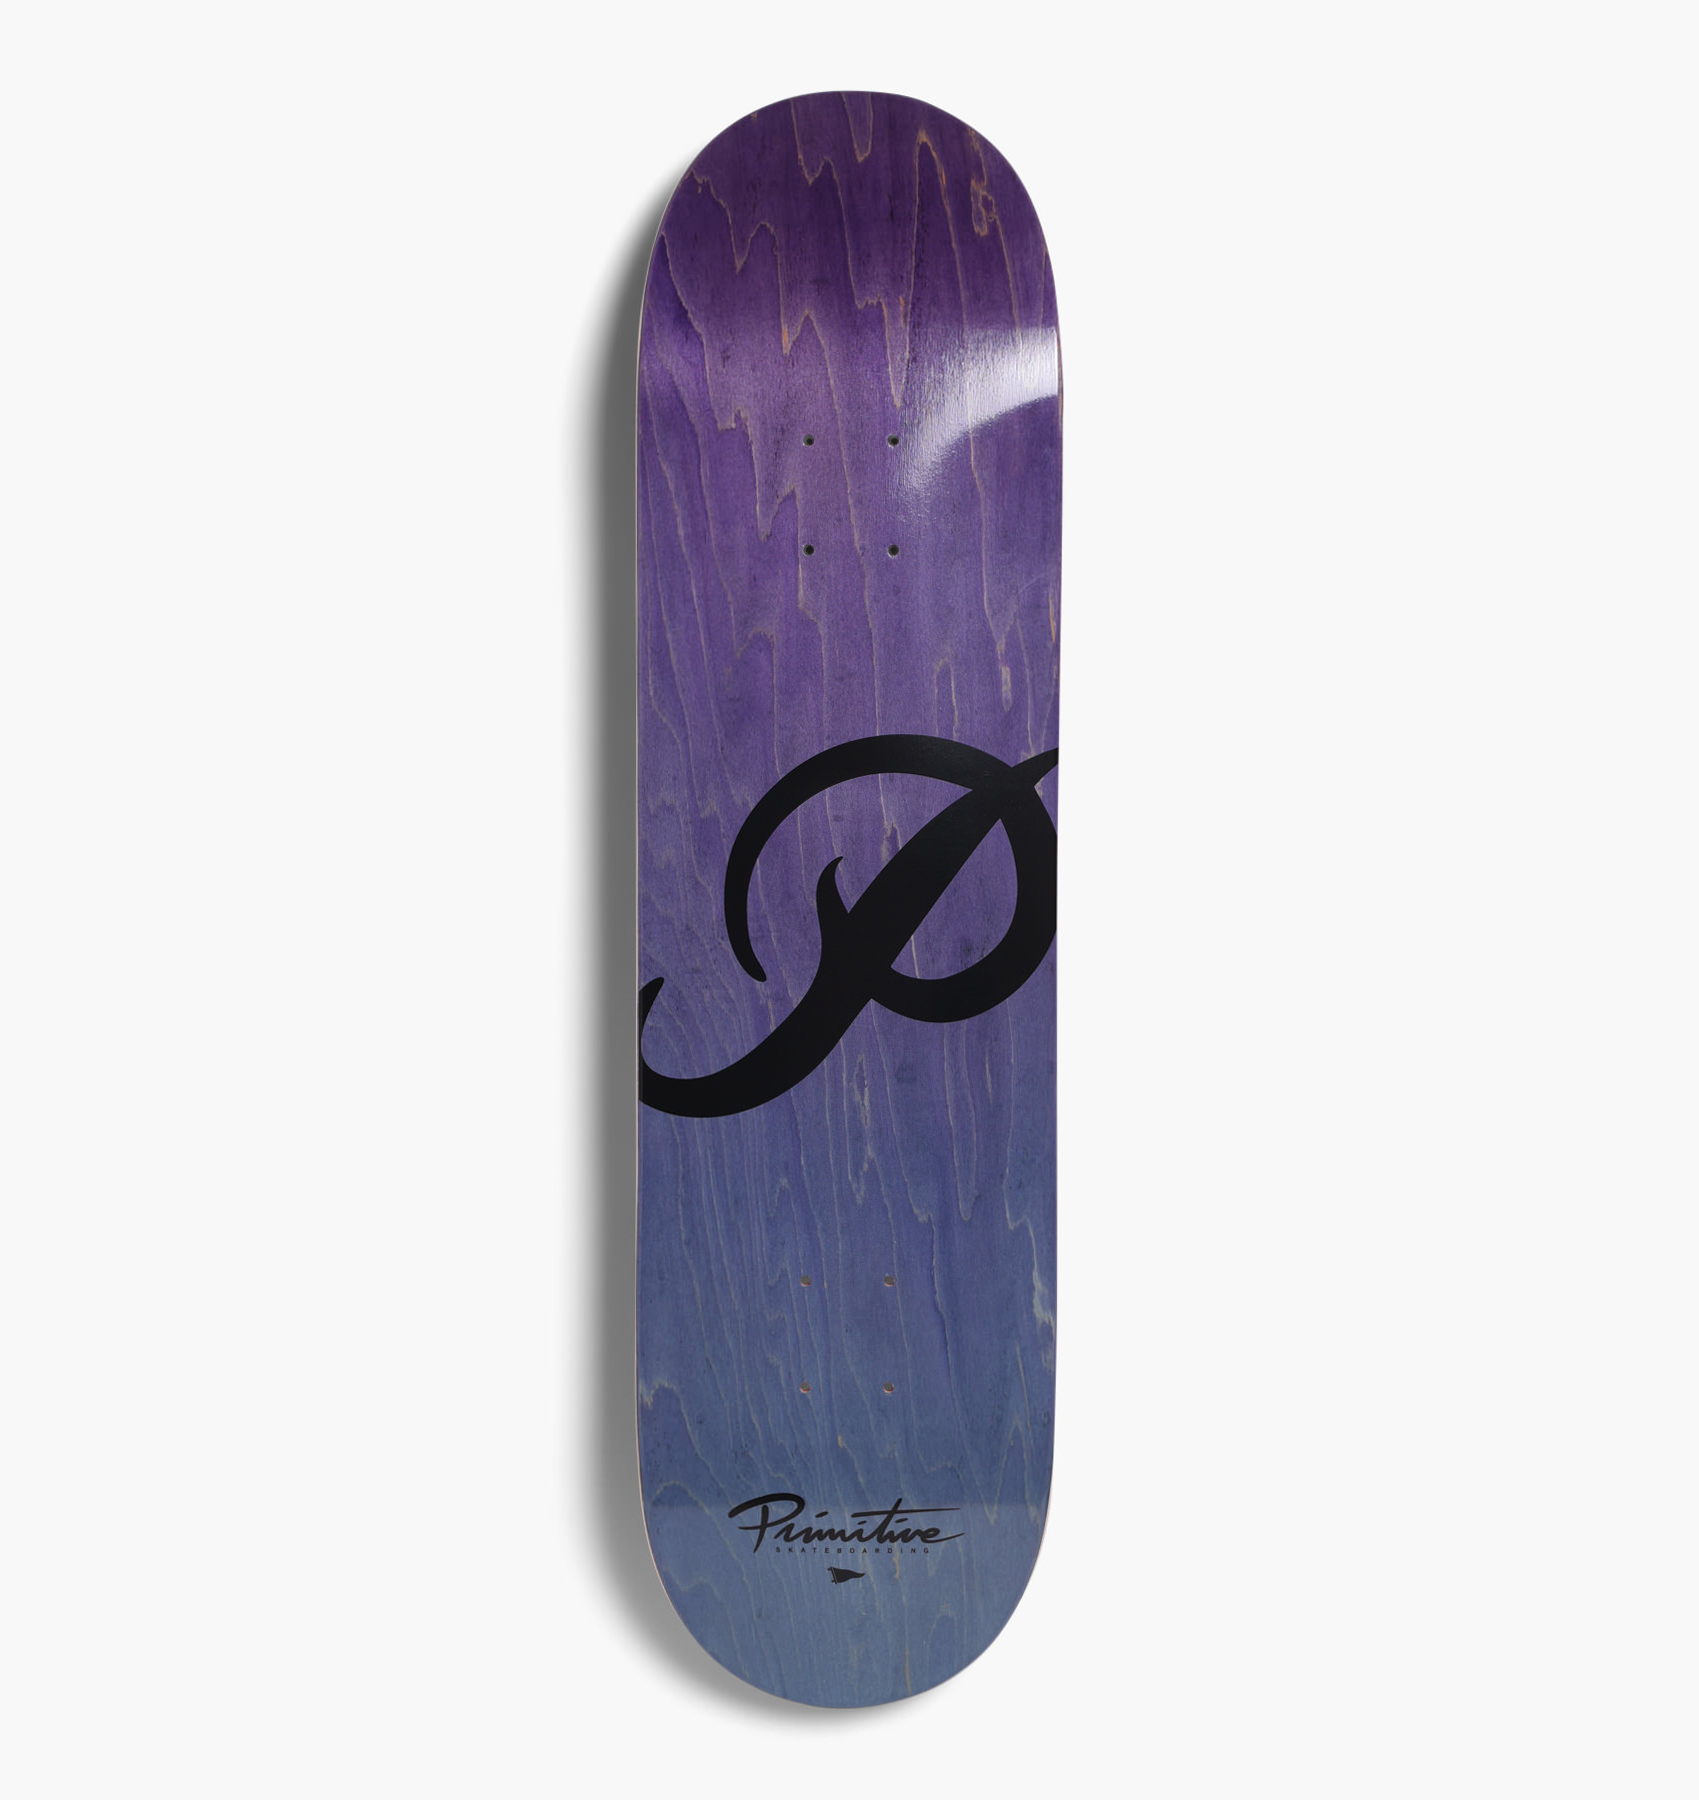 Primitive doska 8.0 CLASSIC P GRADIENT DECK- PURPLE